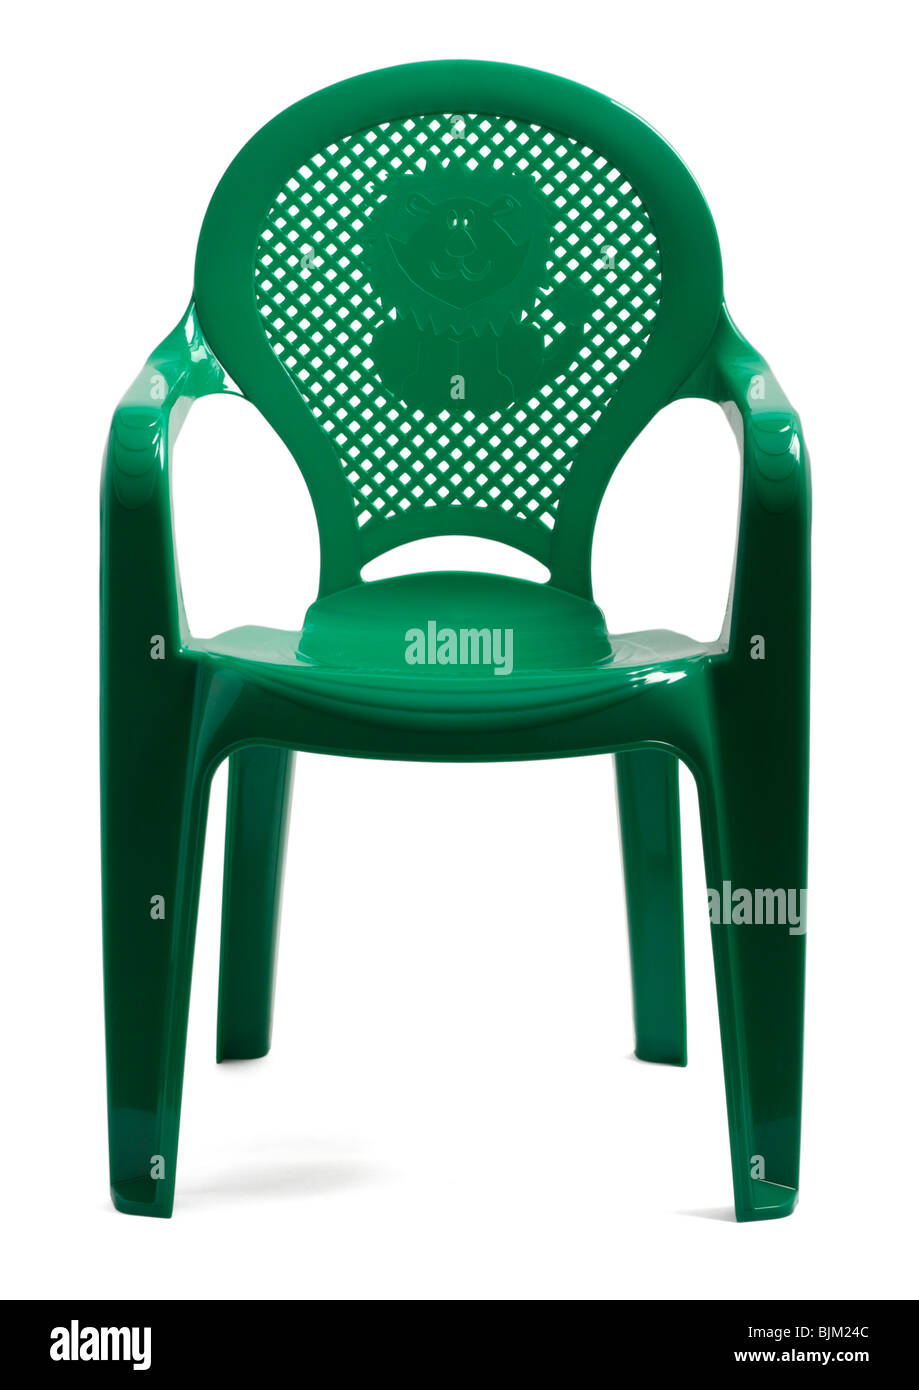 Childrens green plastic chair on white background - Stock Image